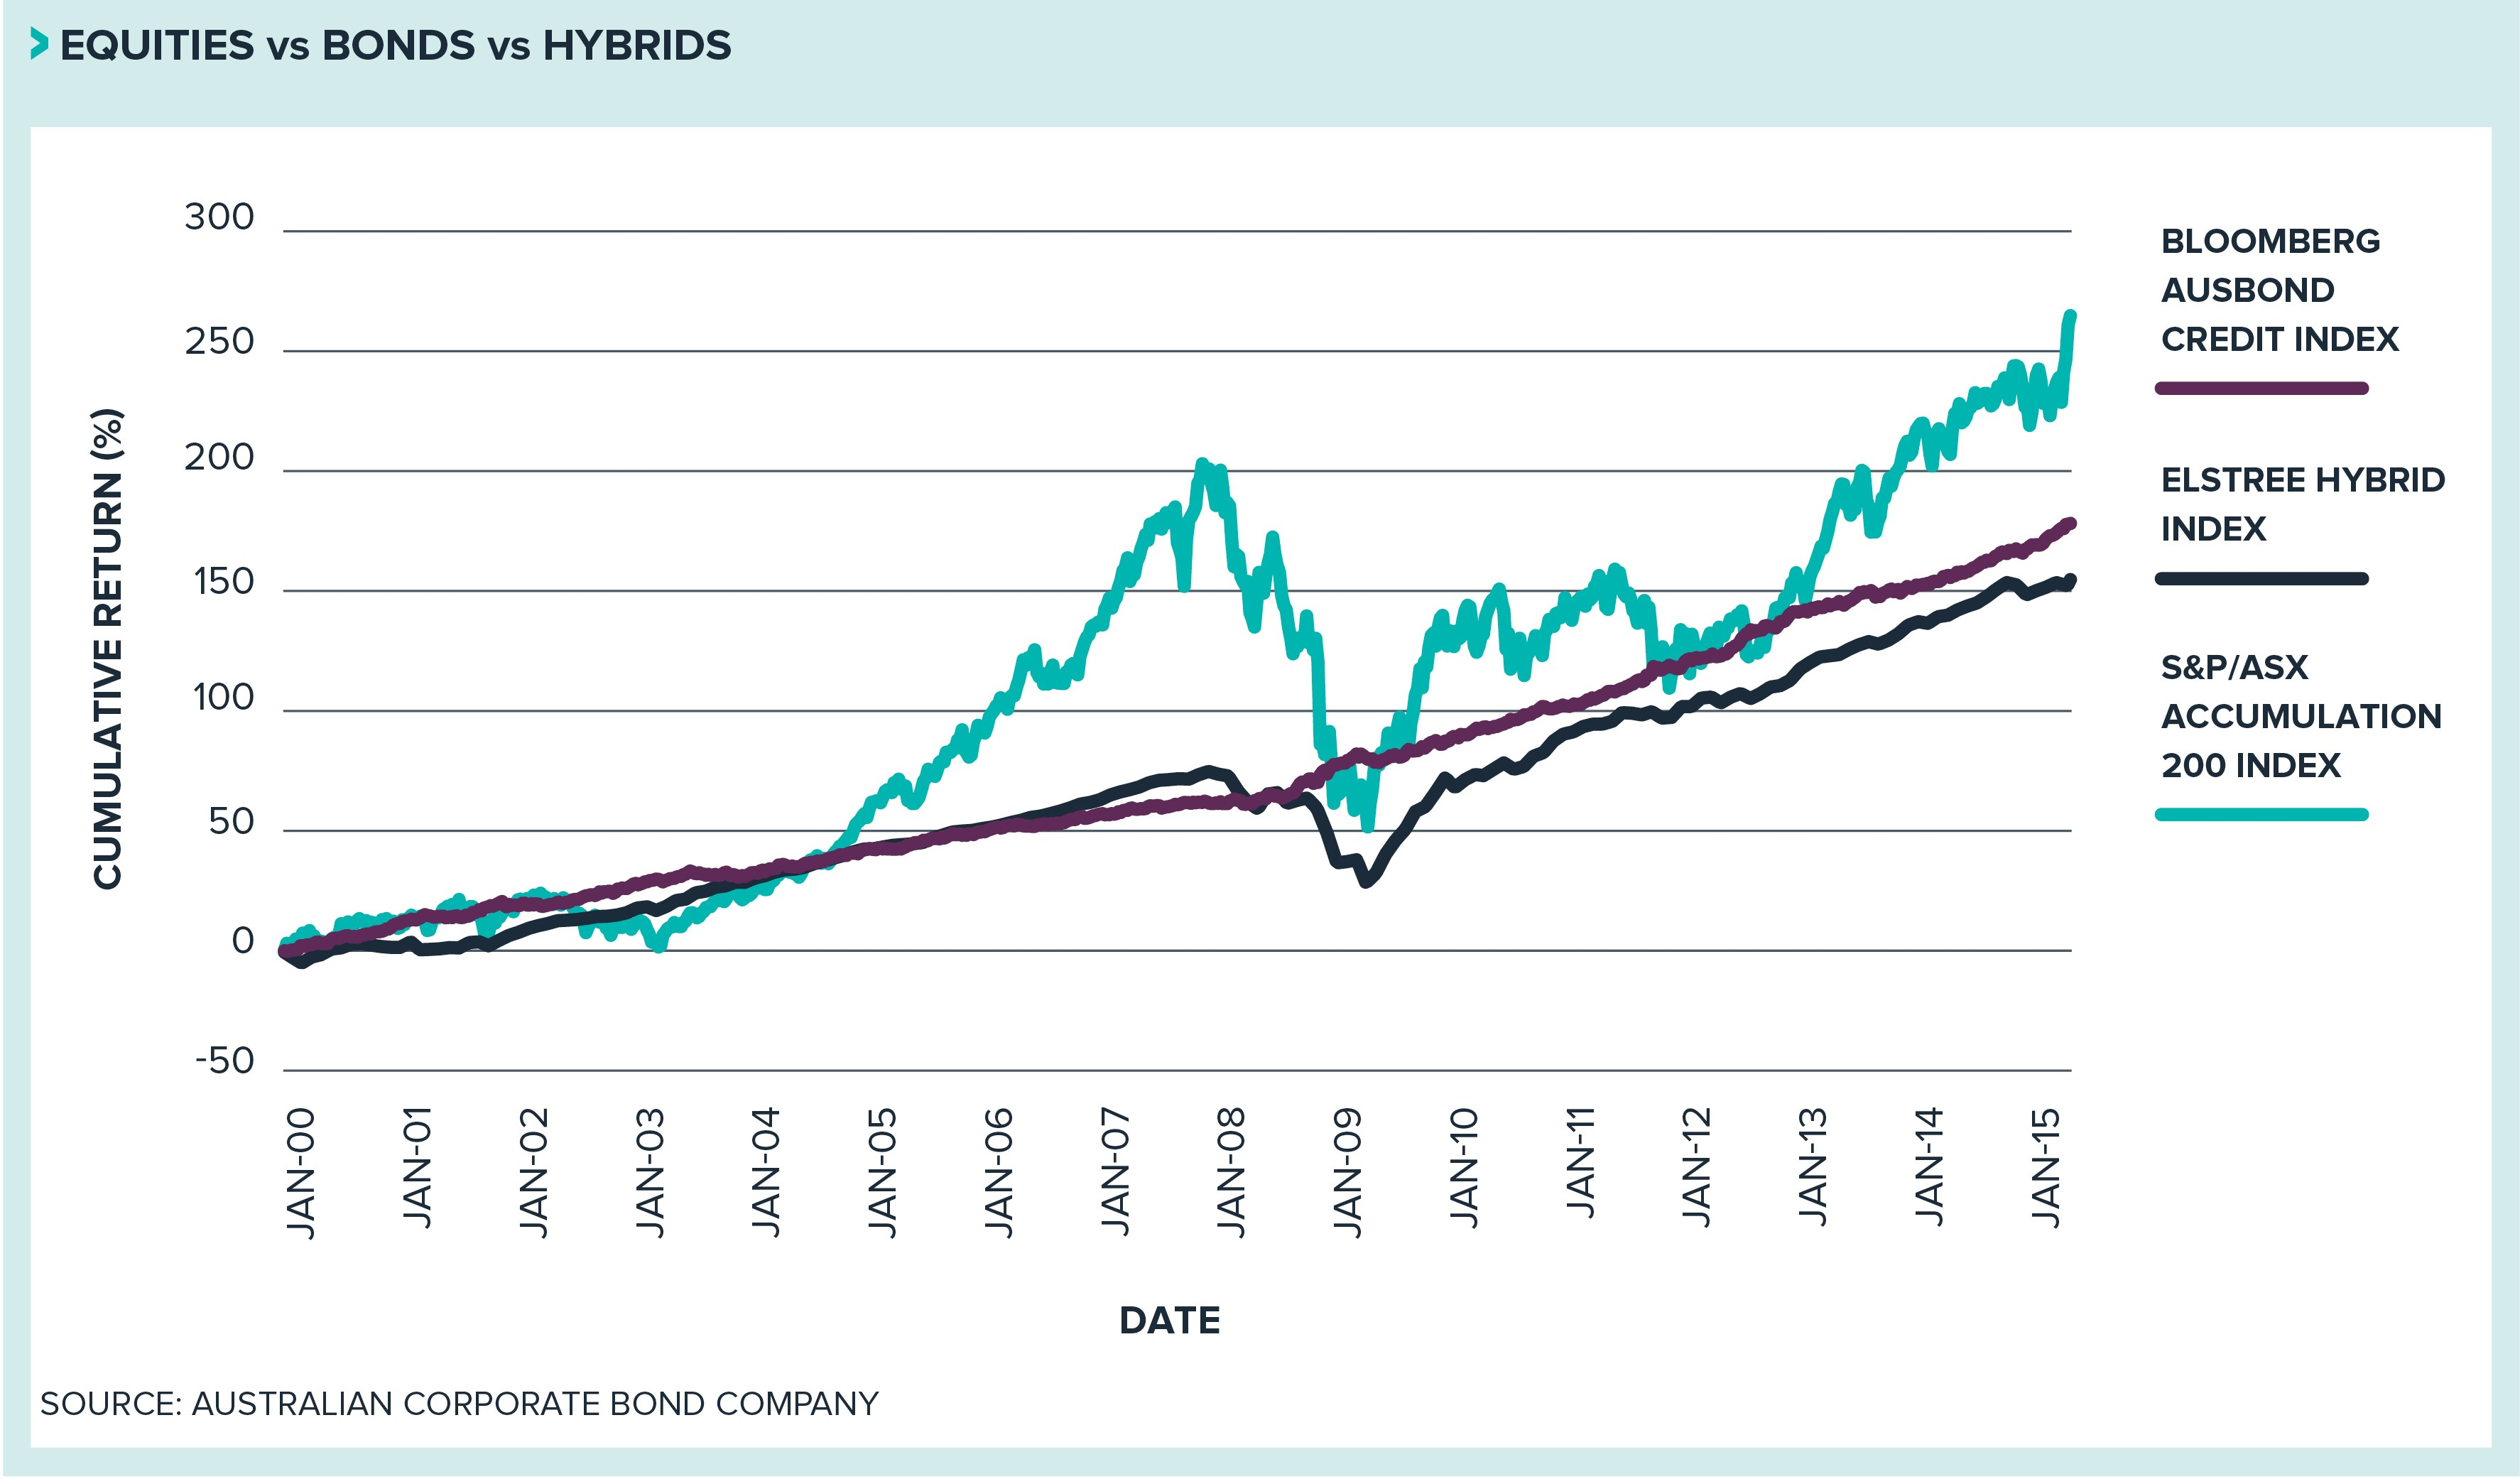 Chart of bonds vs equities vs hybrids